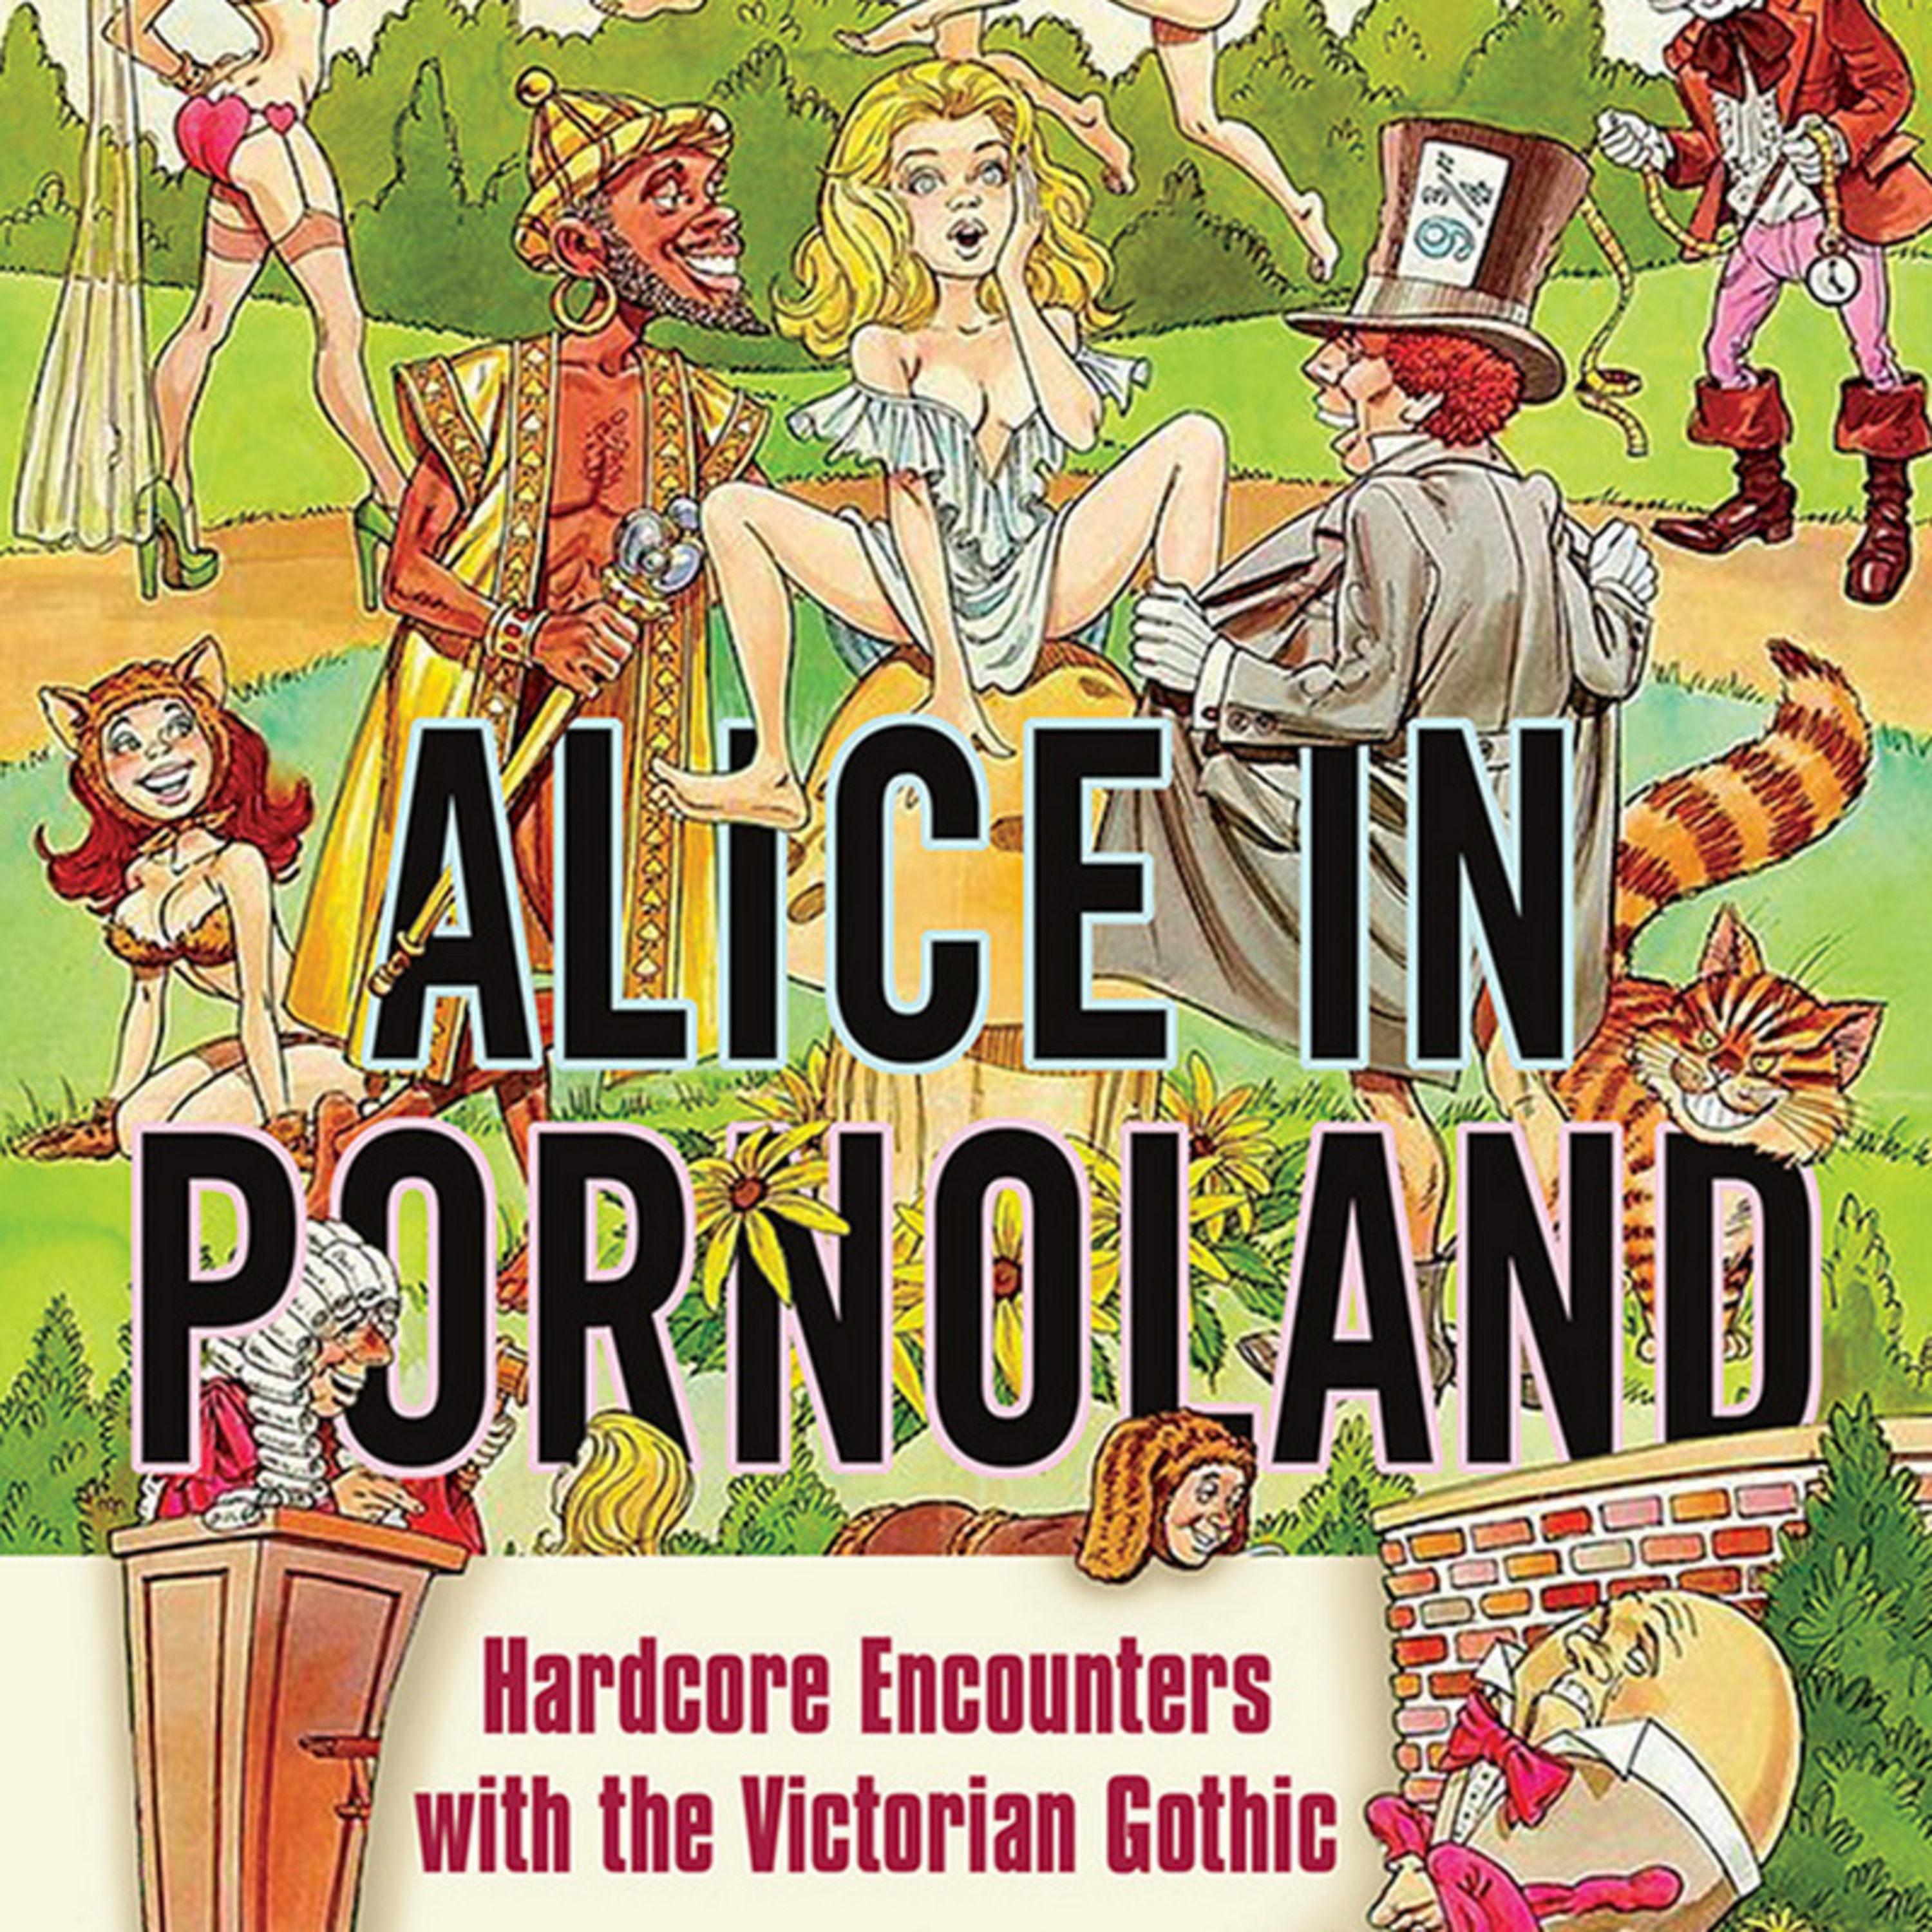 Alice In Wonderland A Musical Porno 1976 lynn comella – porno cultures podcast – podcast – podtail